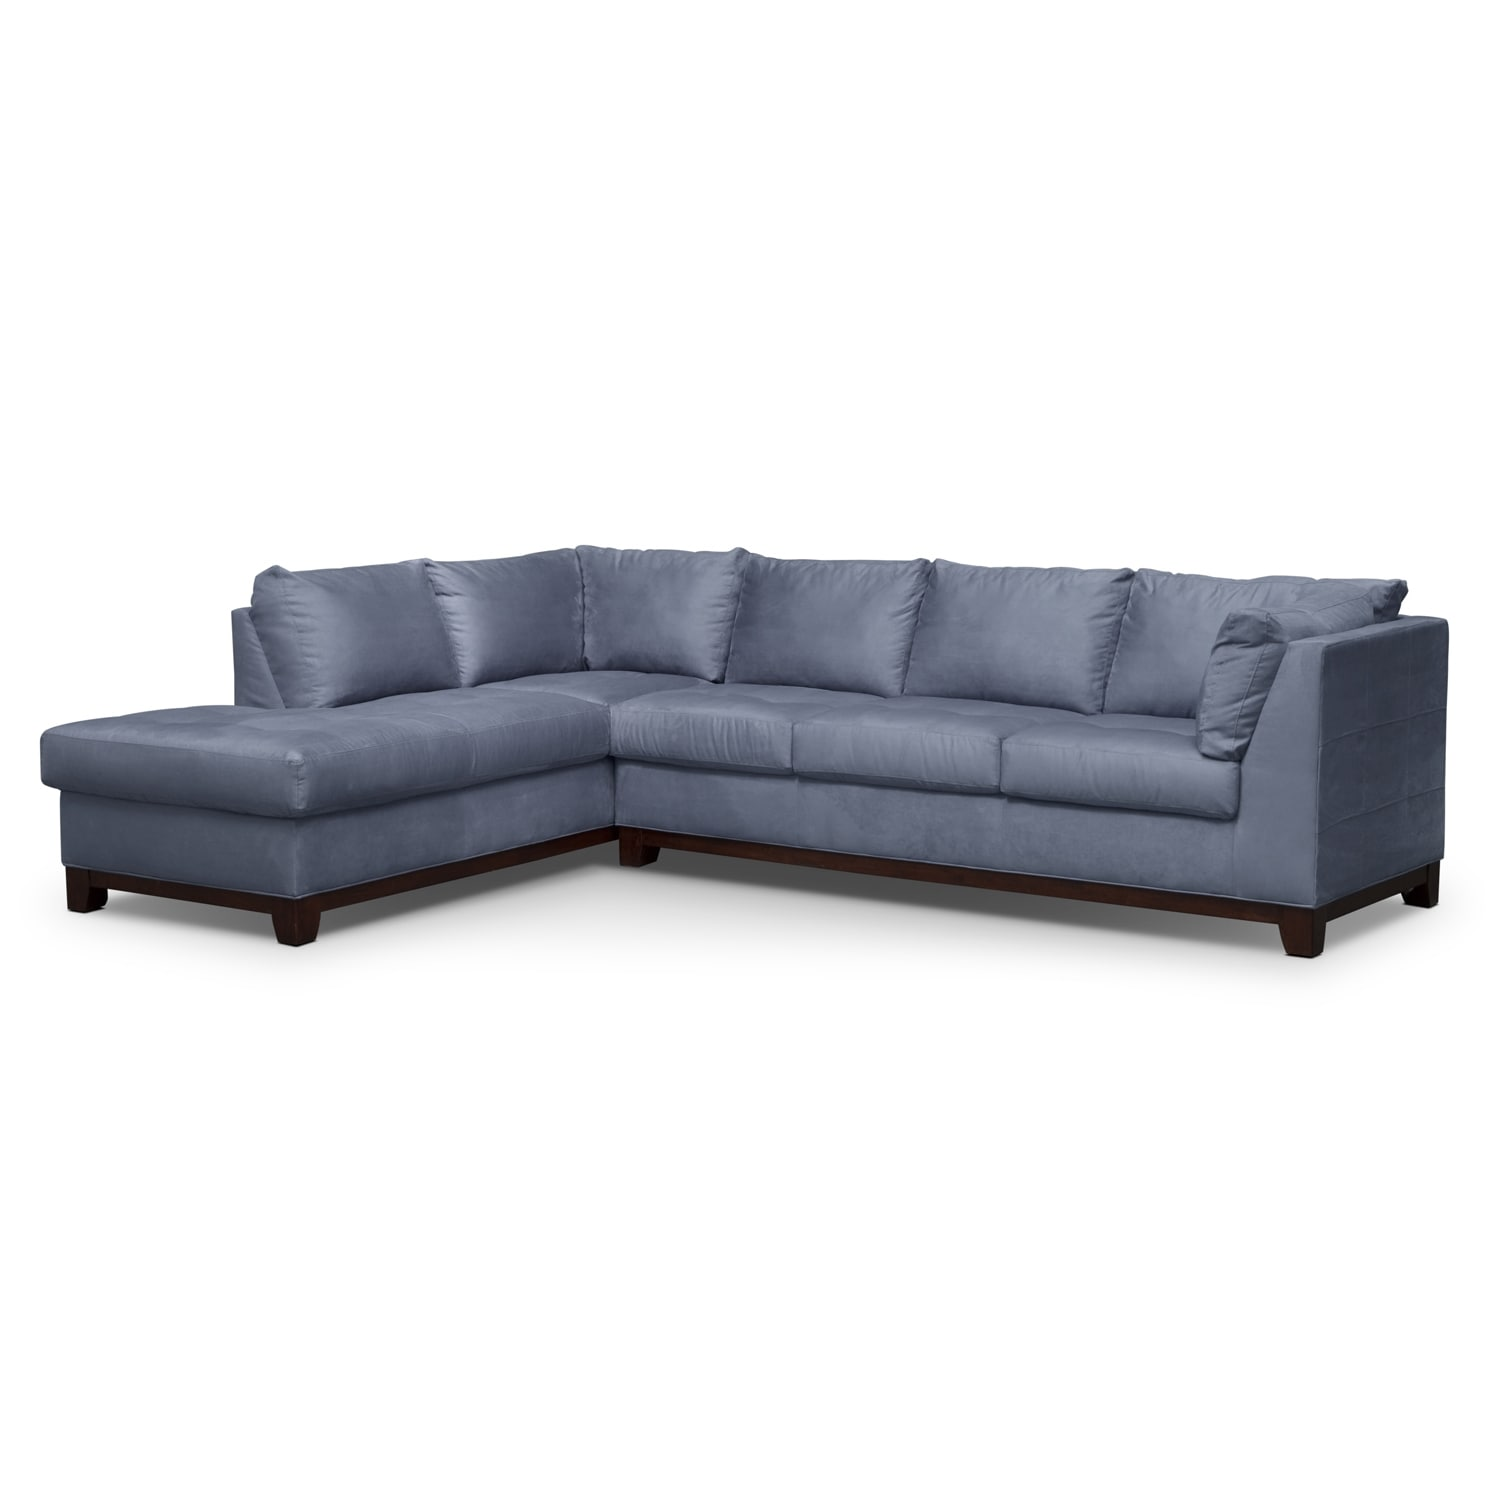 Soho 2 piece sectional with left facing chaise steel for Sectional furniture